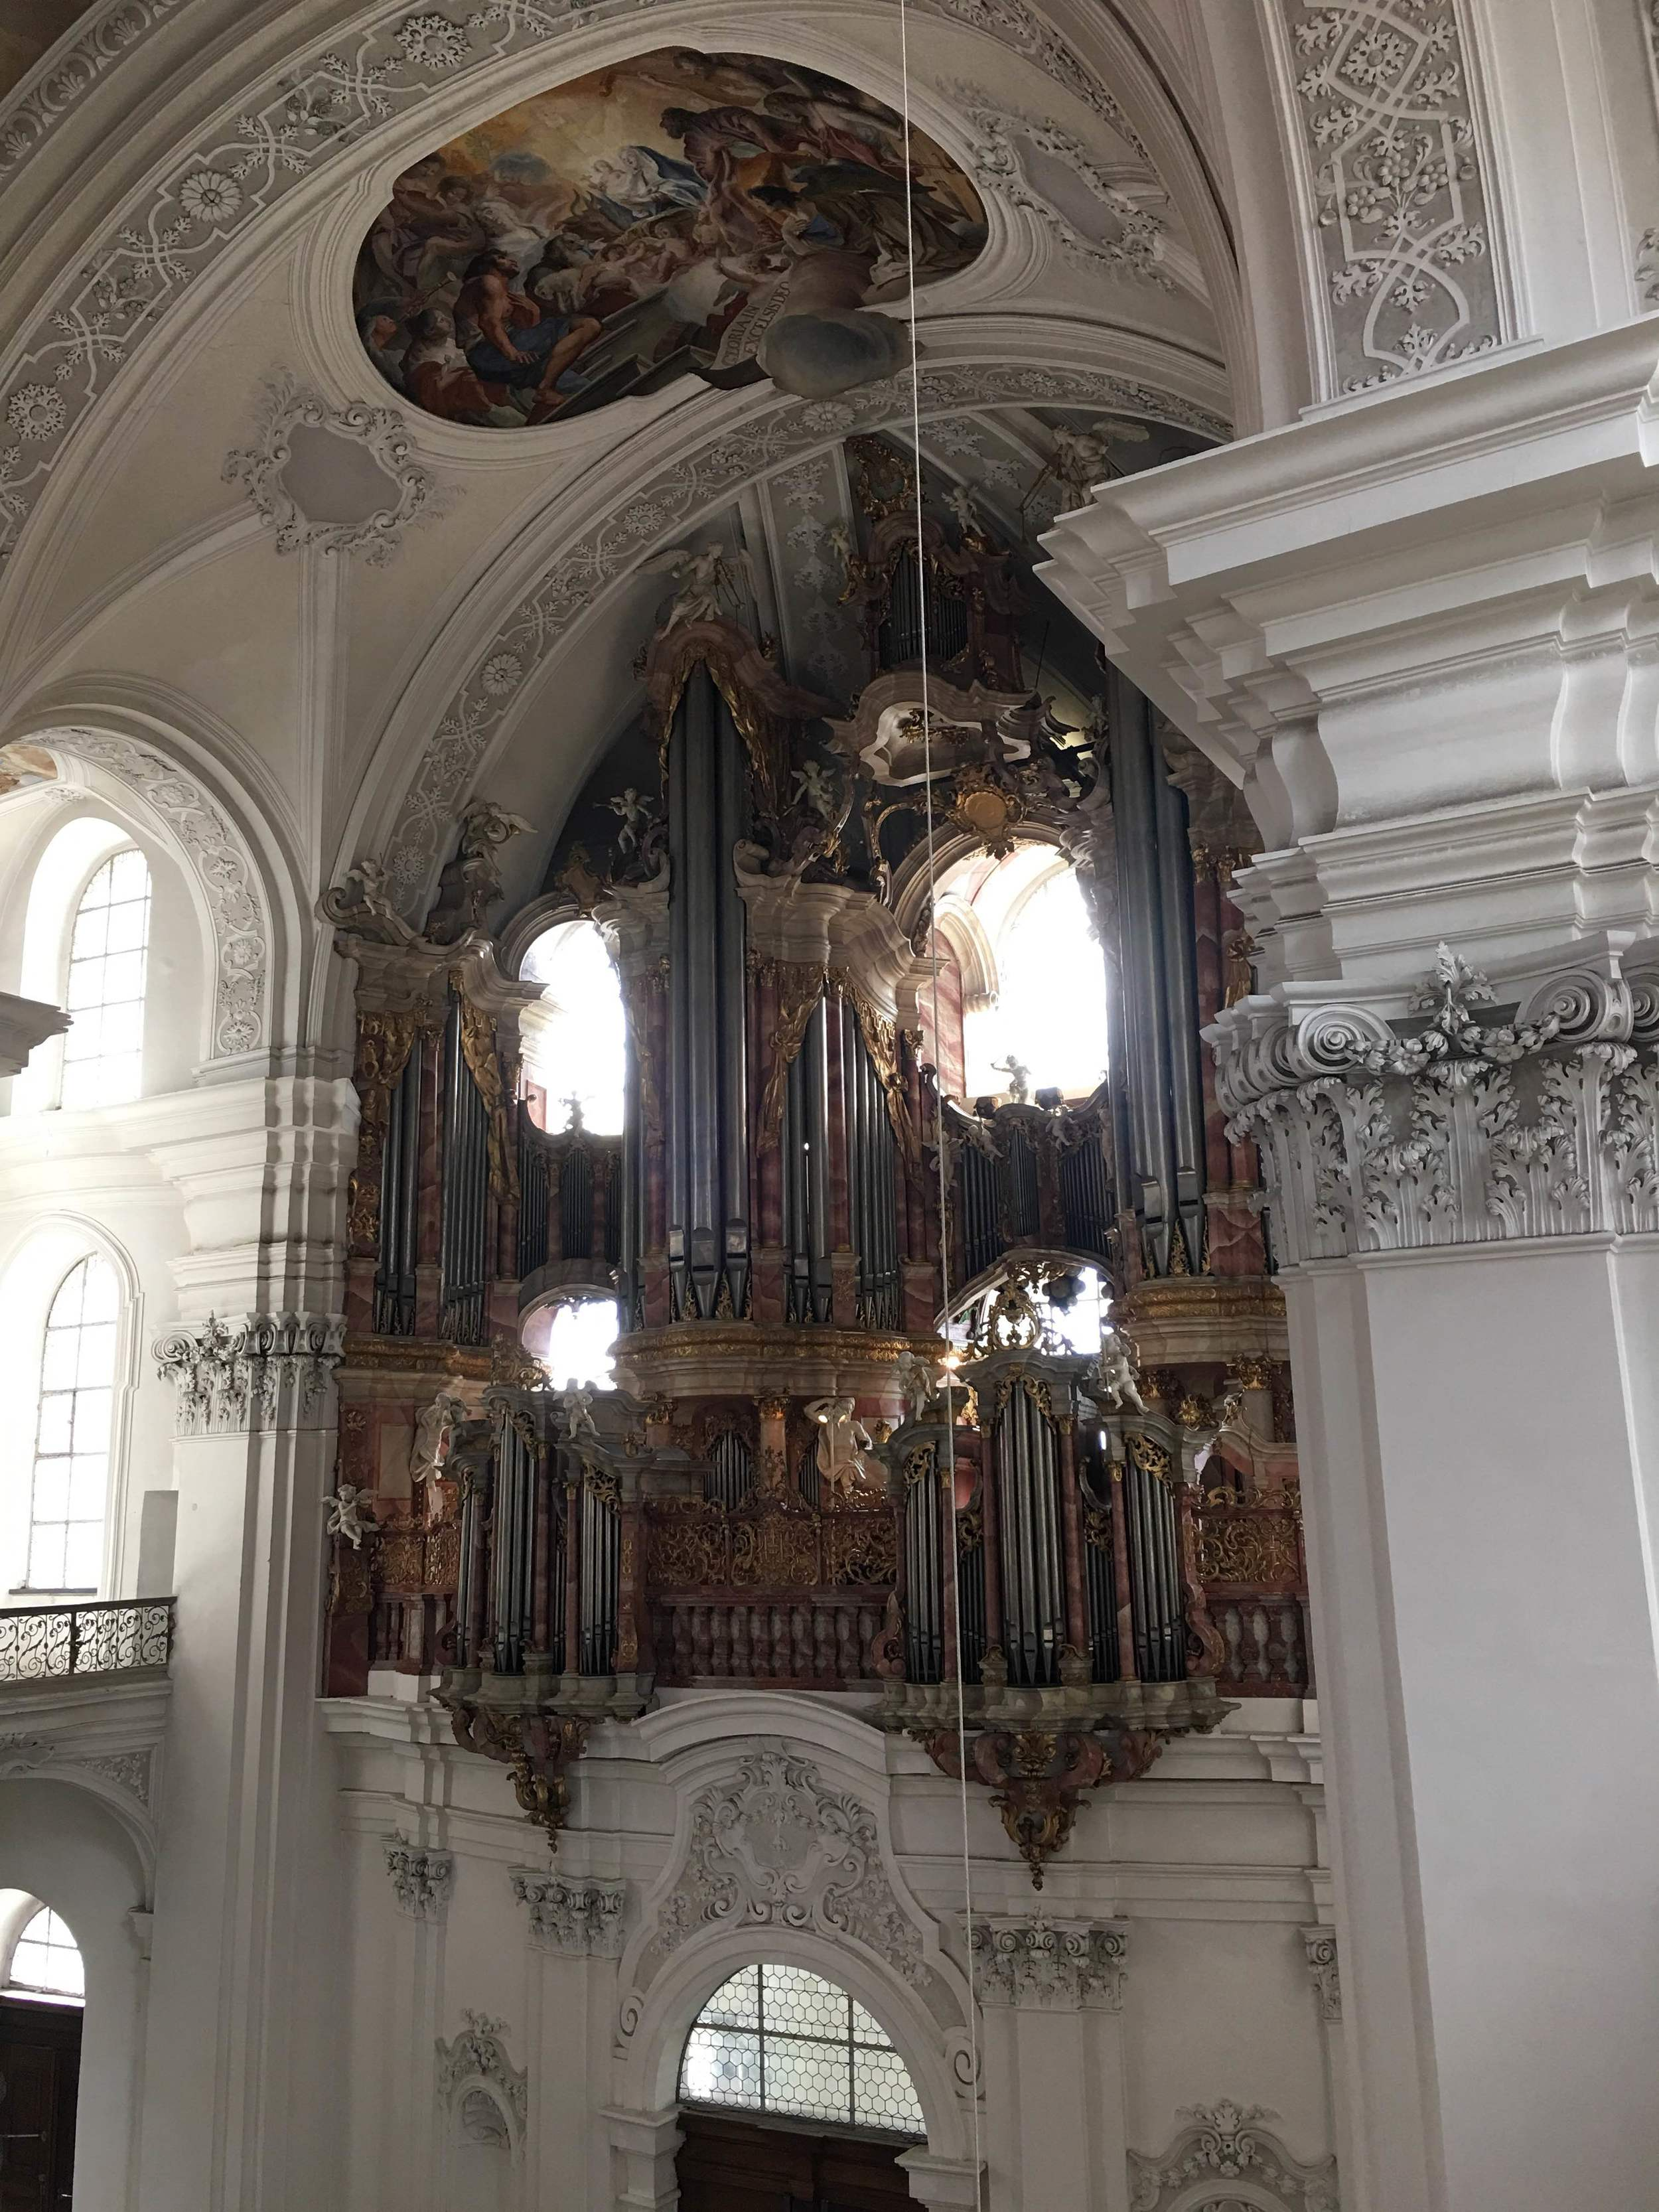 The Gabler organ in Weingarten